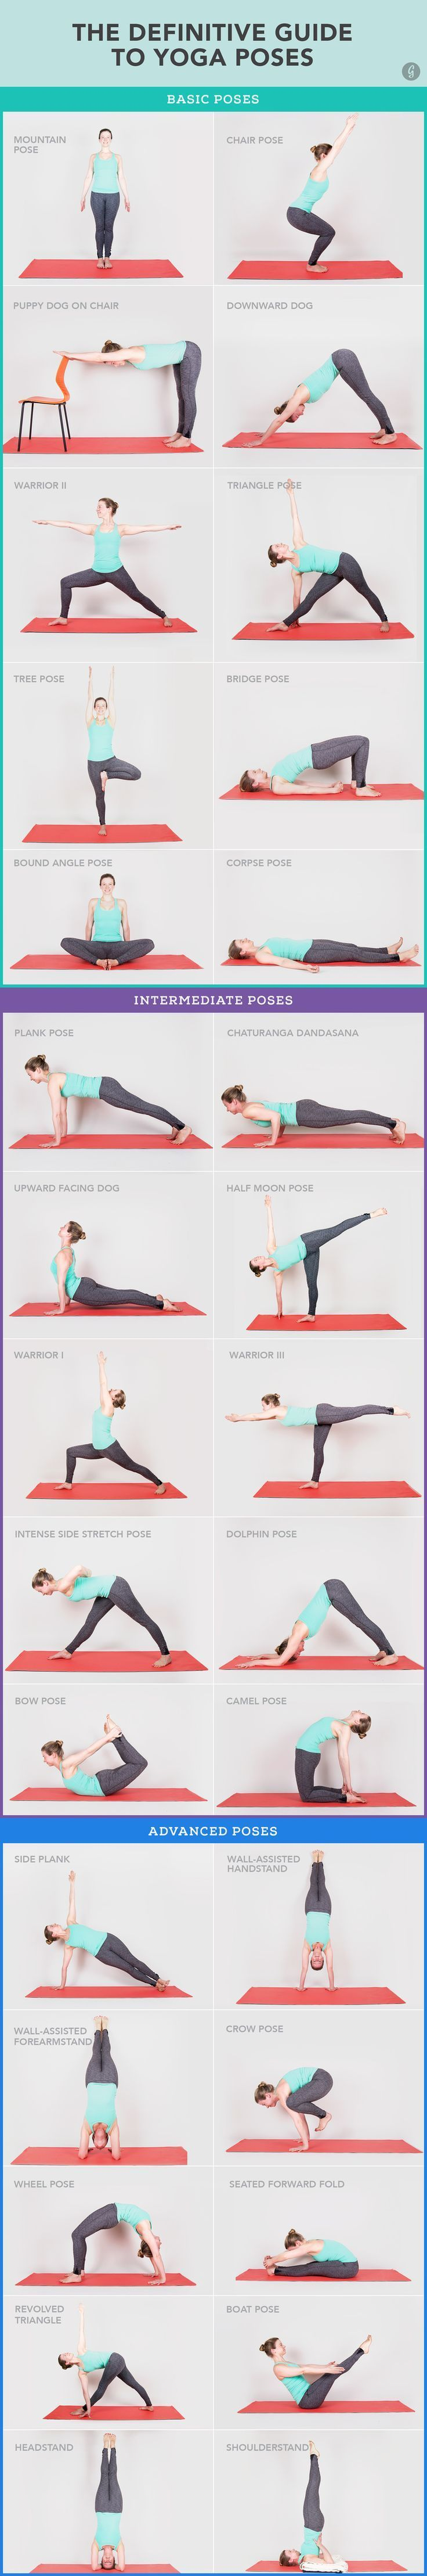 30 Yoga Poses You Really Need To Know fitness how to exercise yoga health diy exercise healthy living home exercise tutorials yoga poses self improvement exercising self help exercise tutorials yoga for beginners